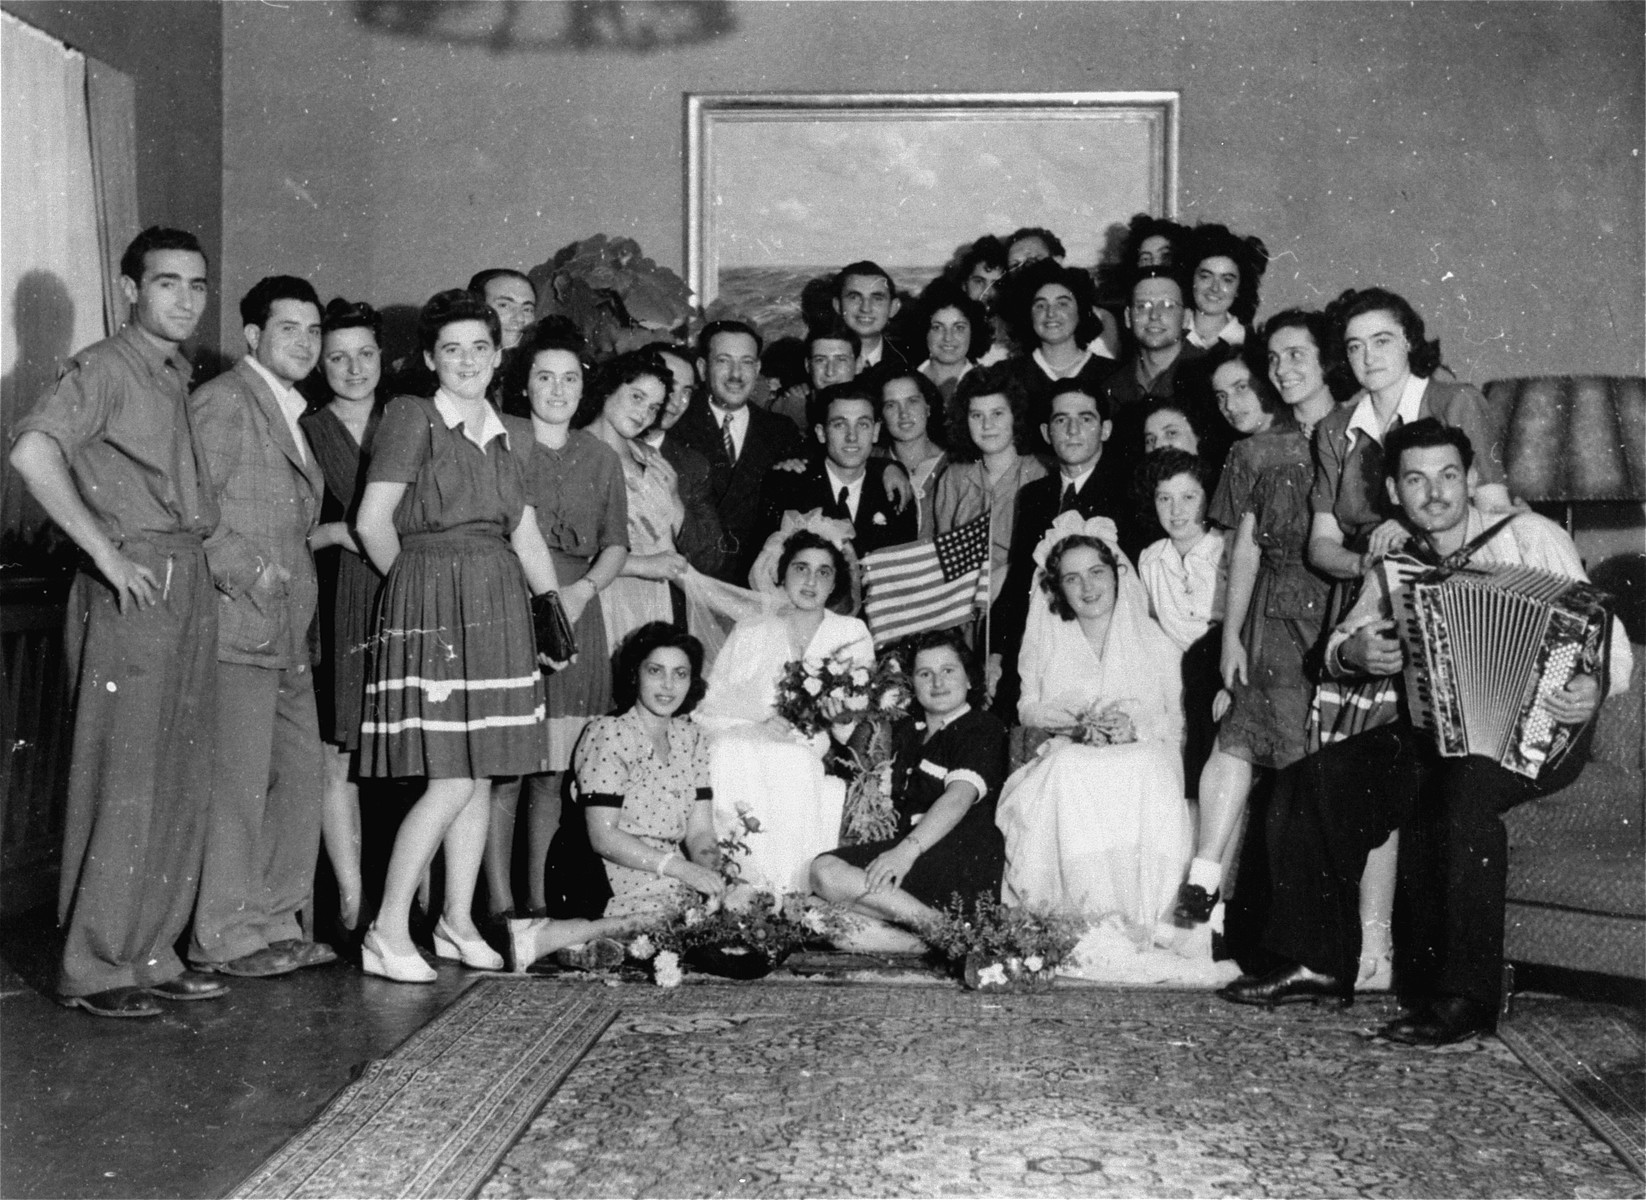 Group portrait of the wedding parties at a double ceremony in the Feldafing displaced persons camp.